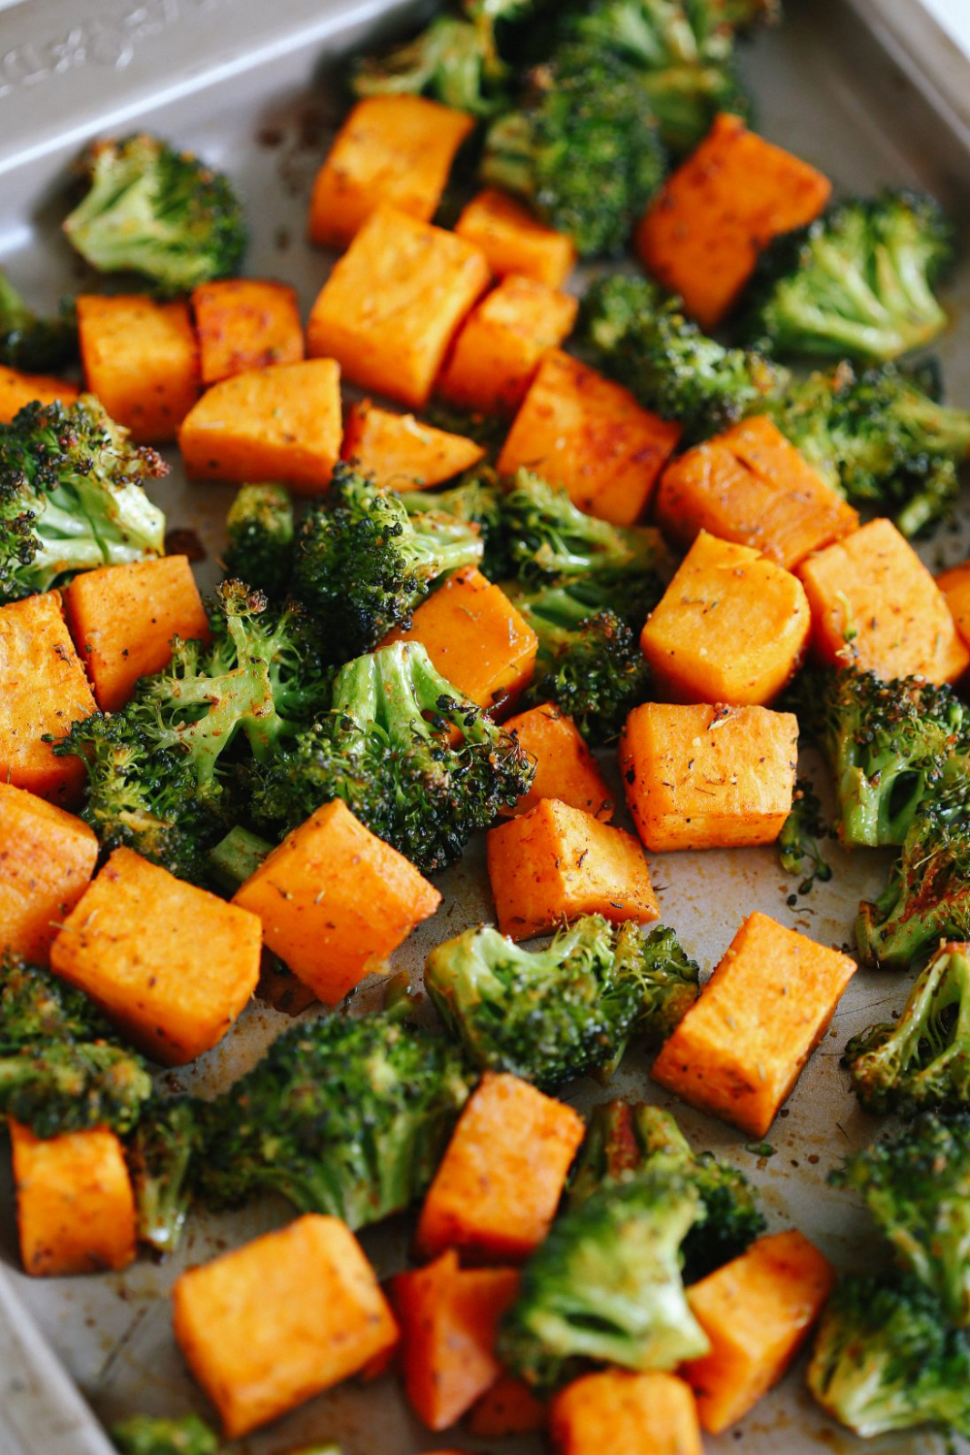 Perfectly Roasted Broccoli & Sweet Potatoes - Vegetable Recipes Healthy Side Dish